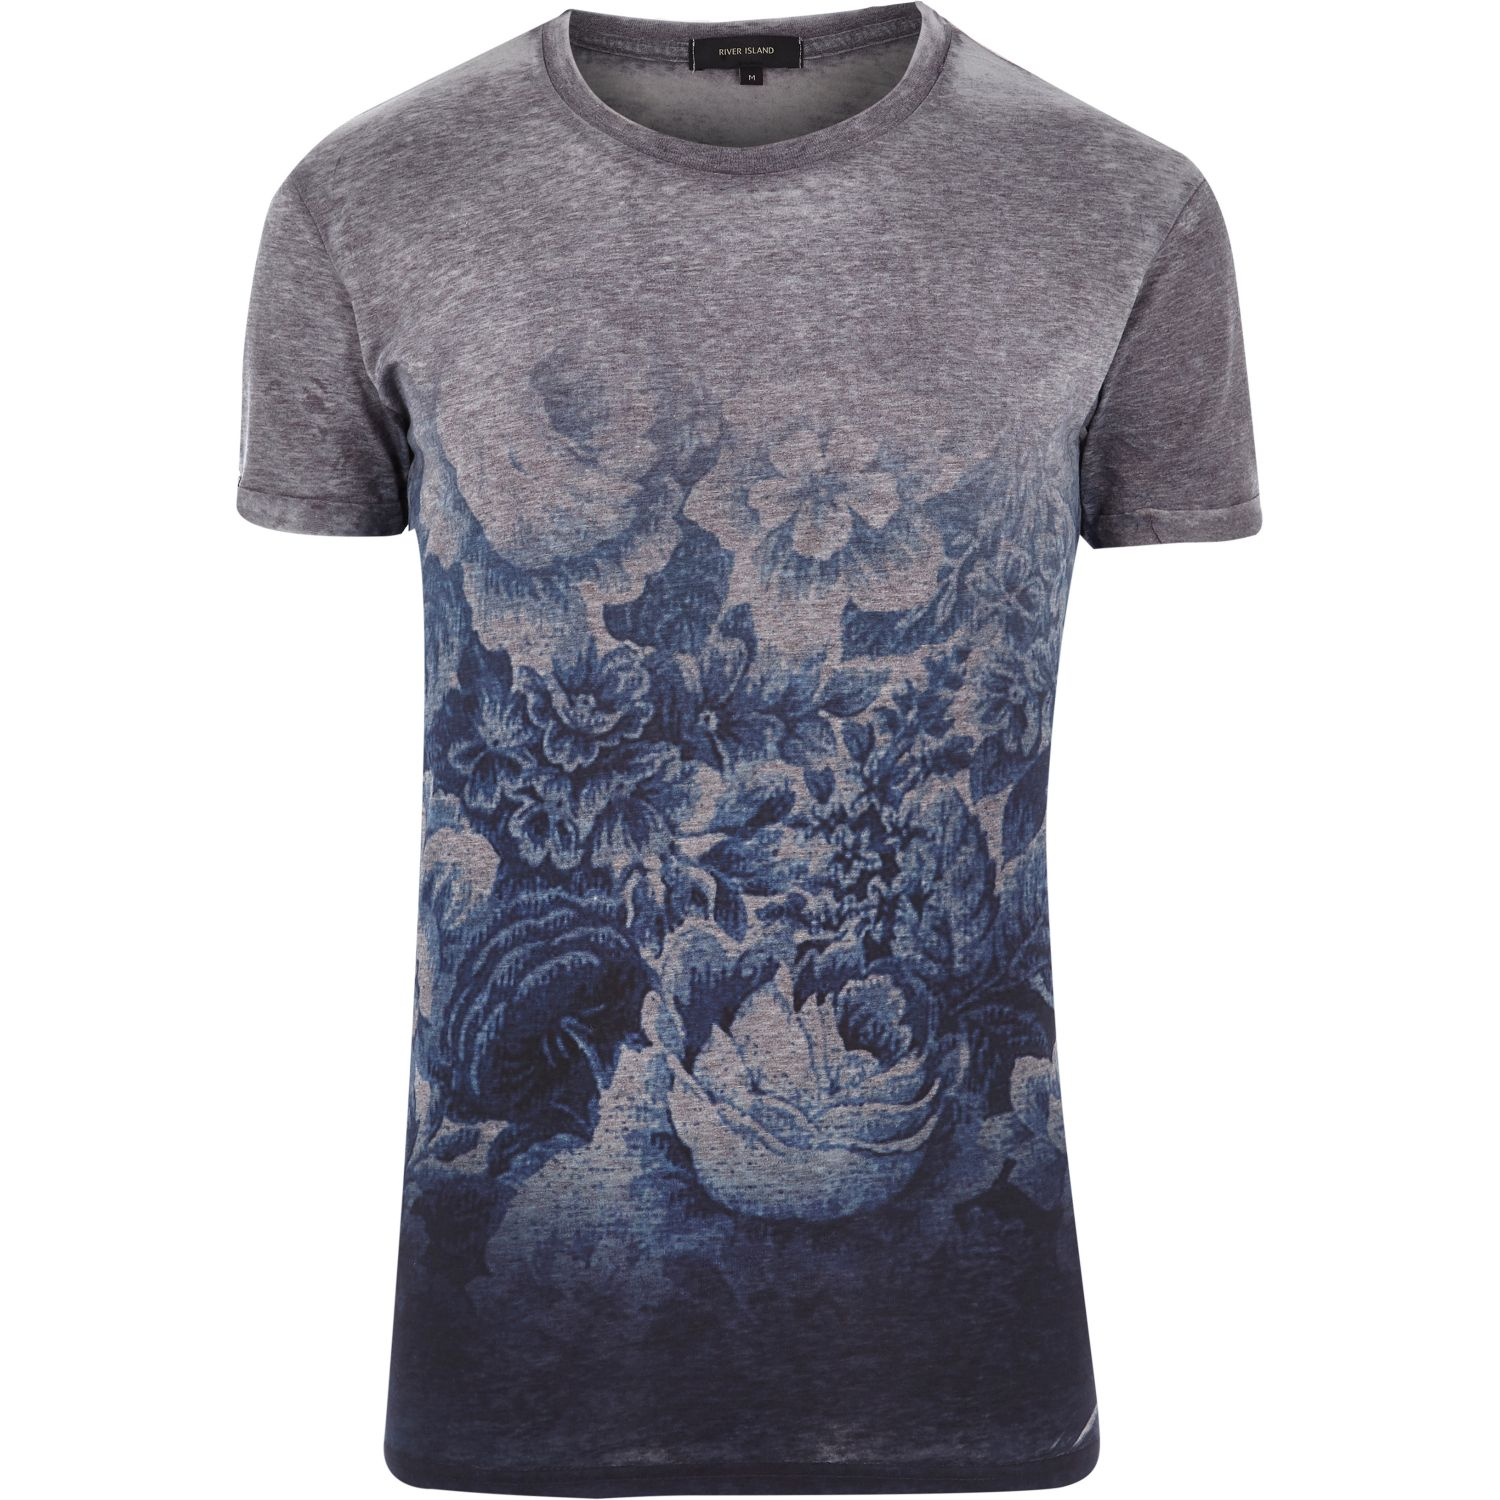 River island grey short sleeve fade print t shirt in gray for Faded color t shirts